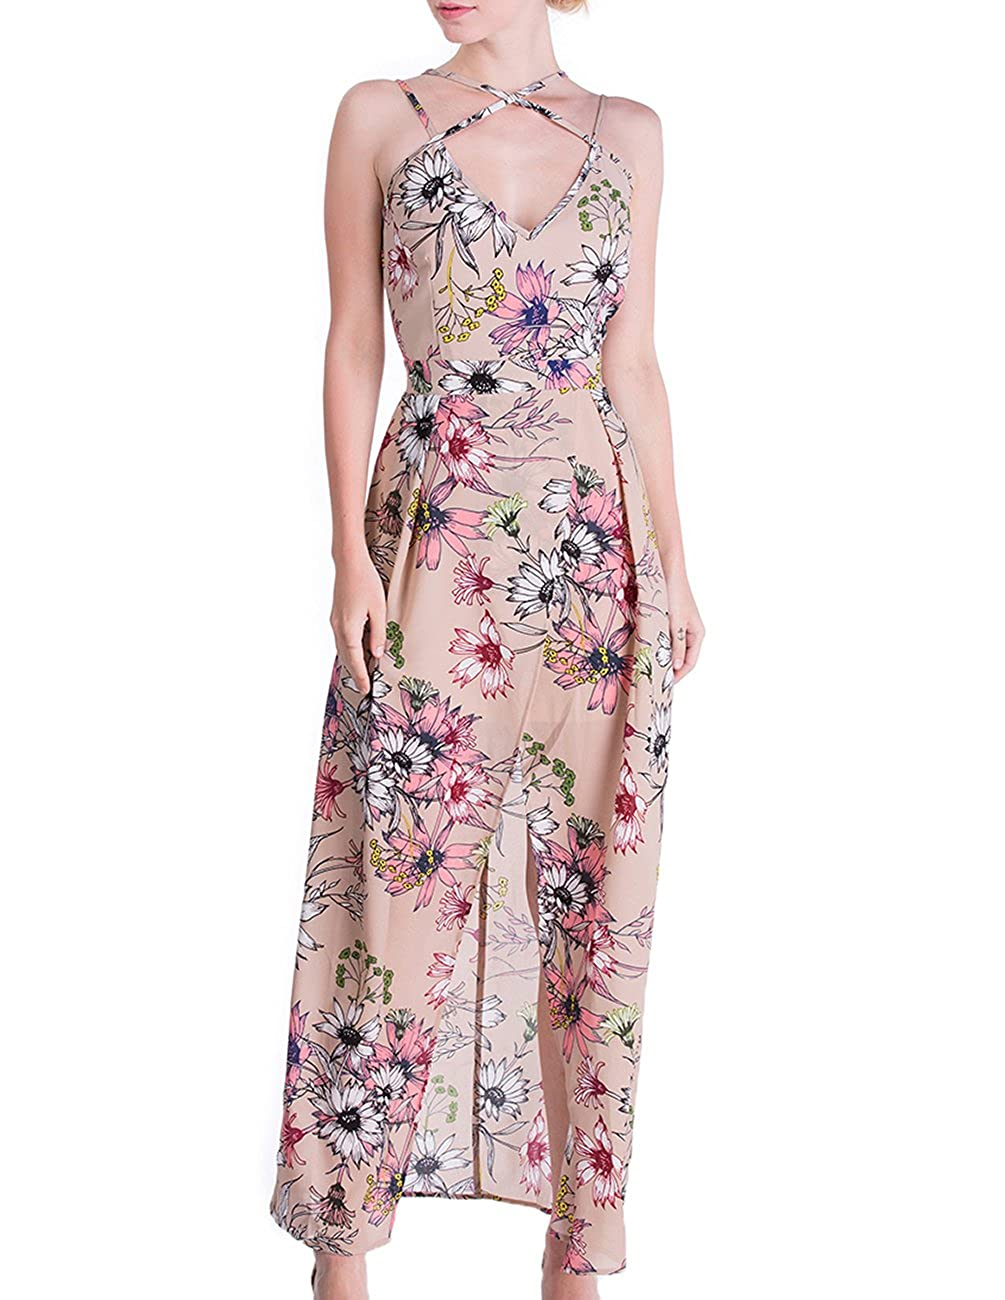 c0200a1b05 DISBEST Women's Long Maxi Dresses, V Neck Floral Print Side Slit Criss  Cross Back Party Beach Maxi Dress at Amazon Women's Clothing store: